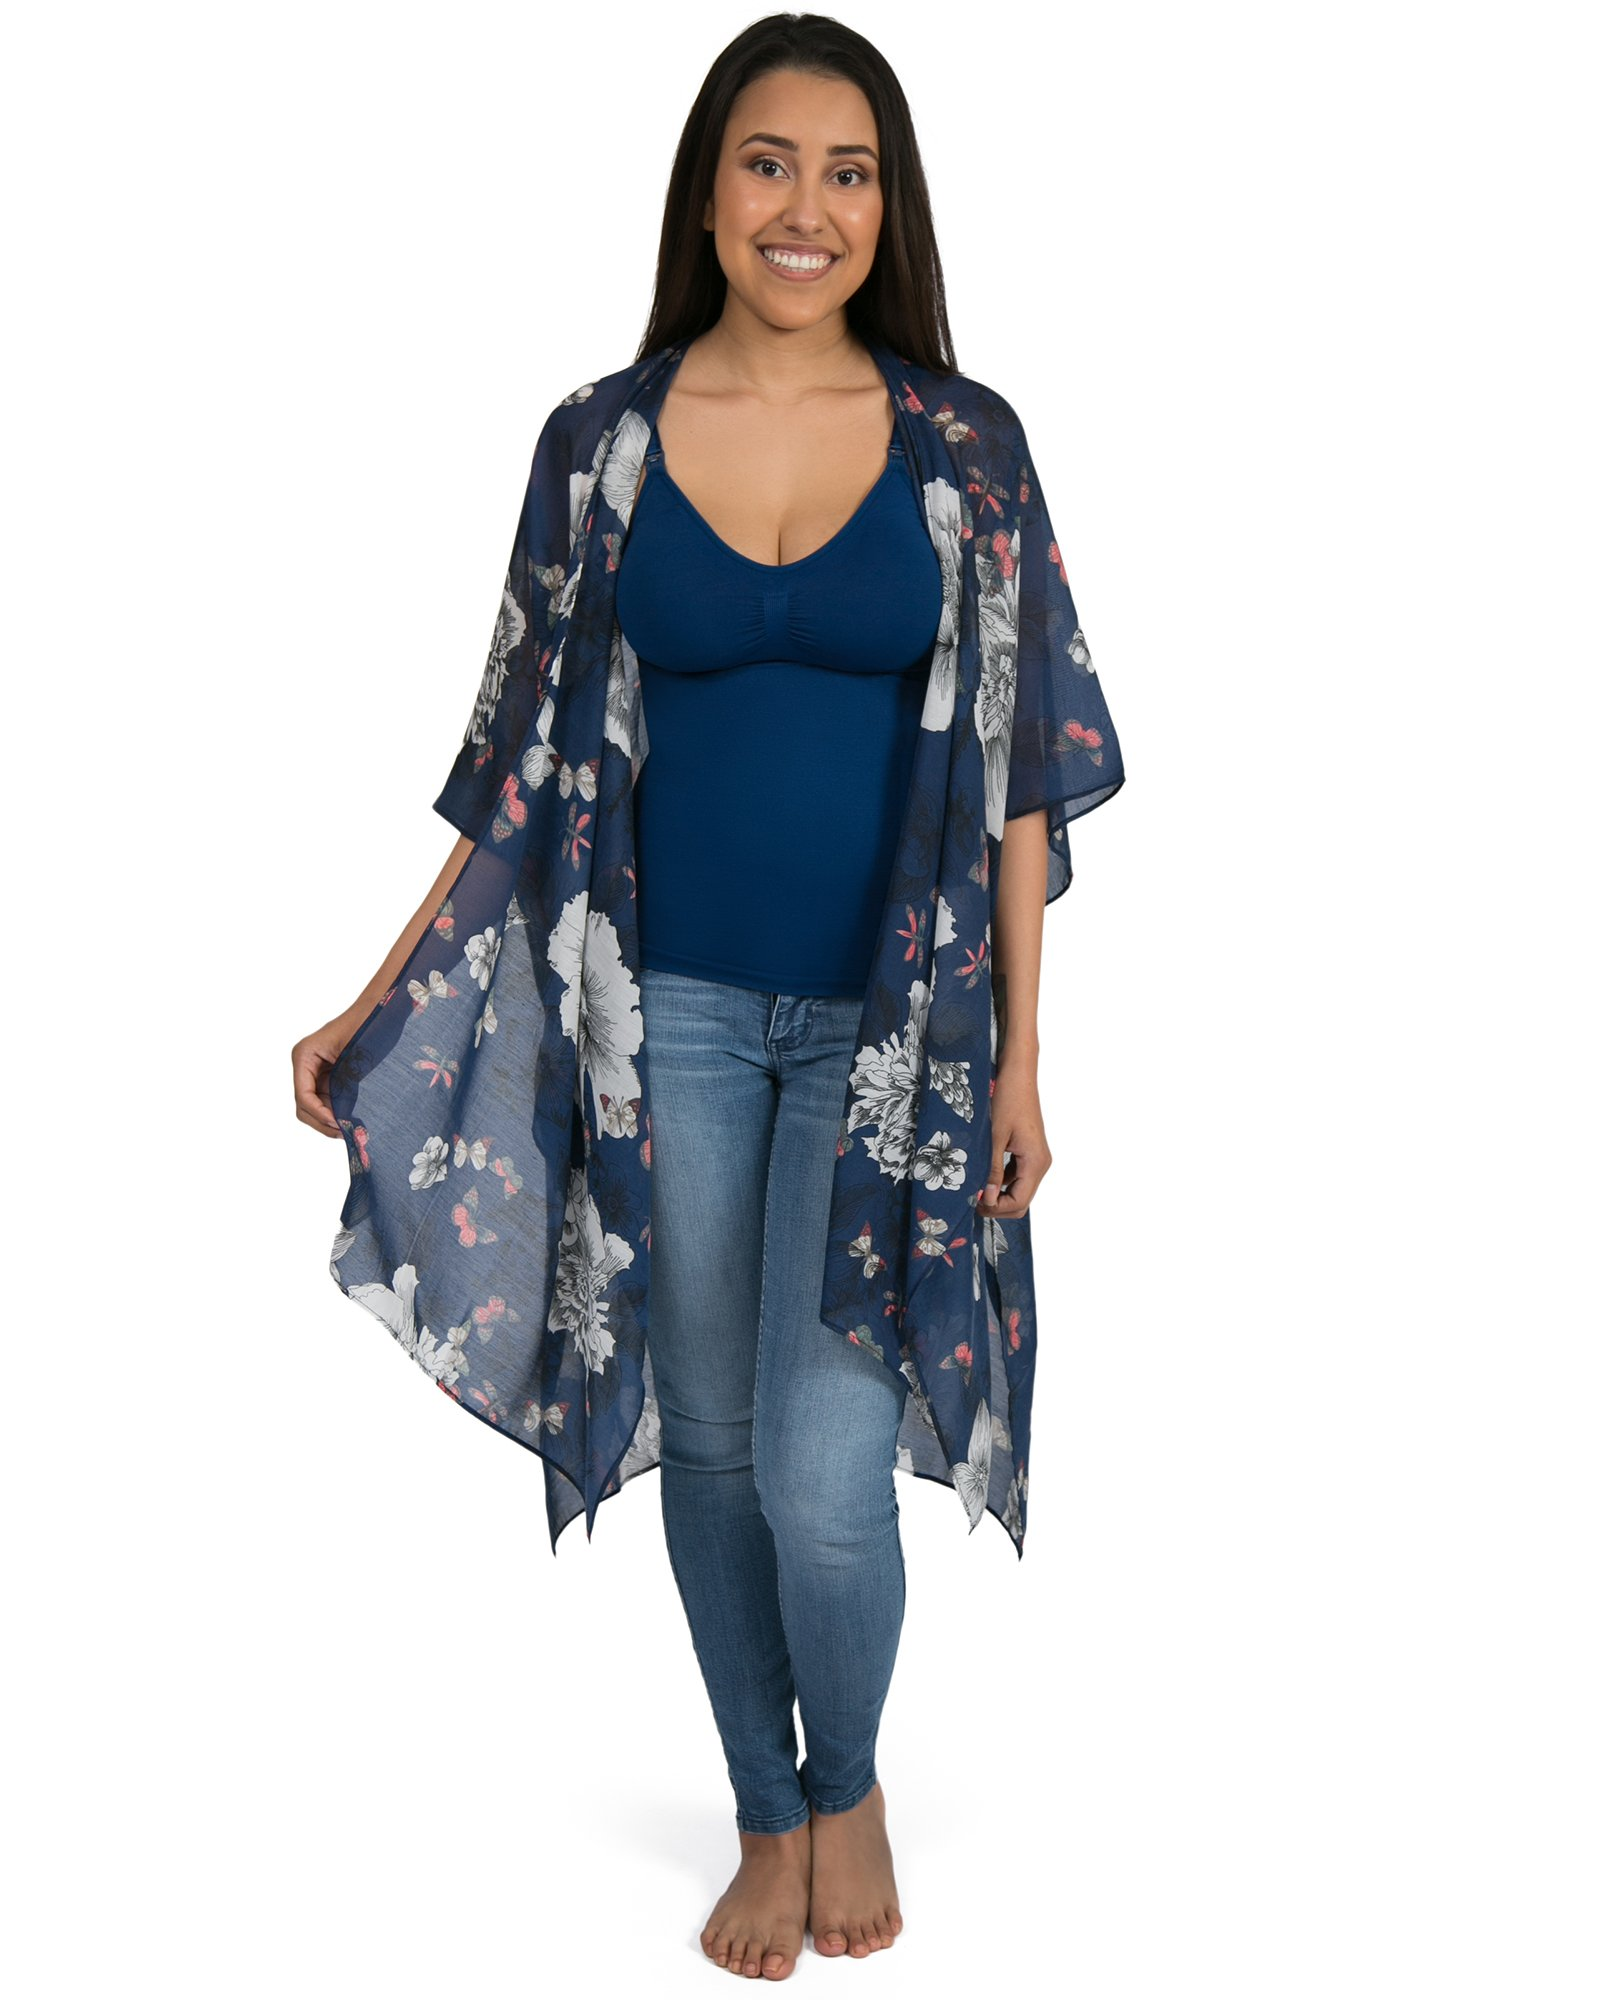 Kindred Bravely Sheer Cardigan Nursing Wrap & Kimono (Blue Floral Print, One Size) by Kindred Bravely